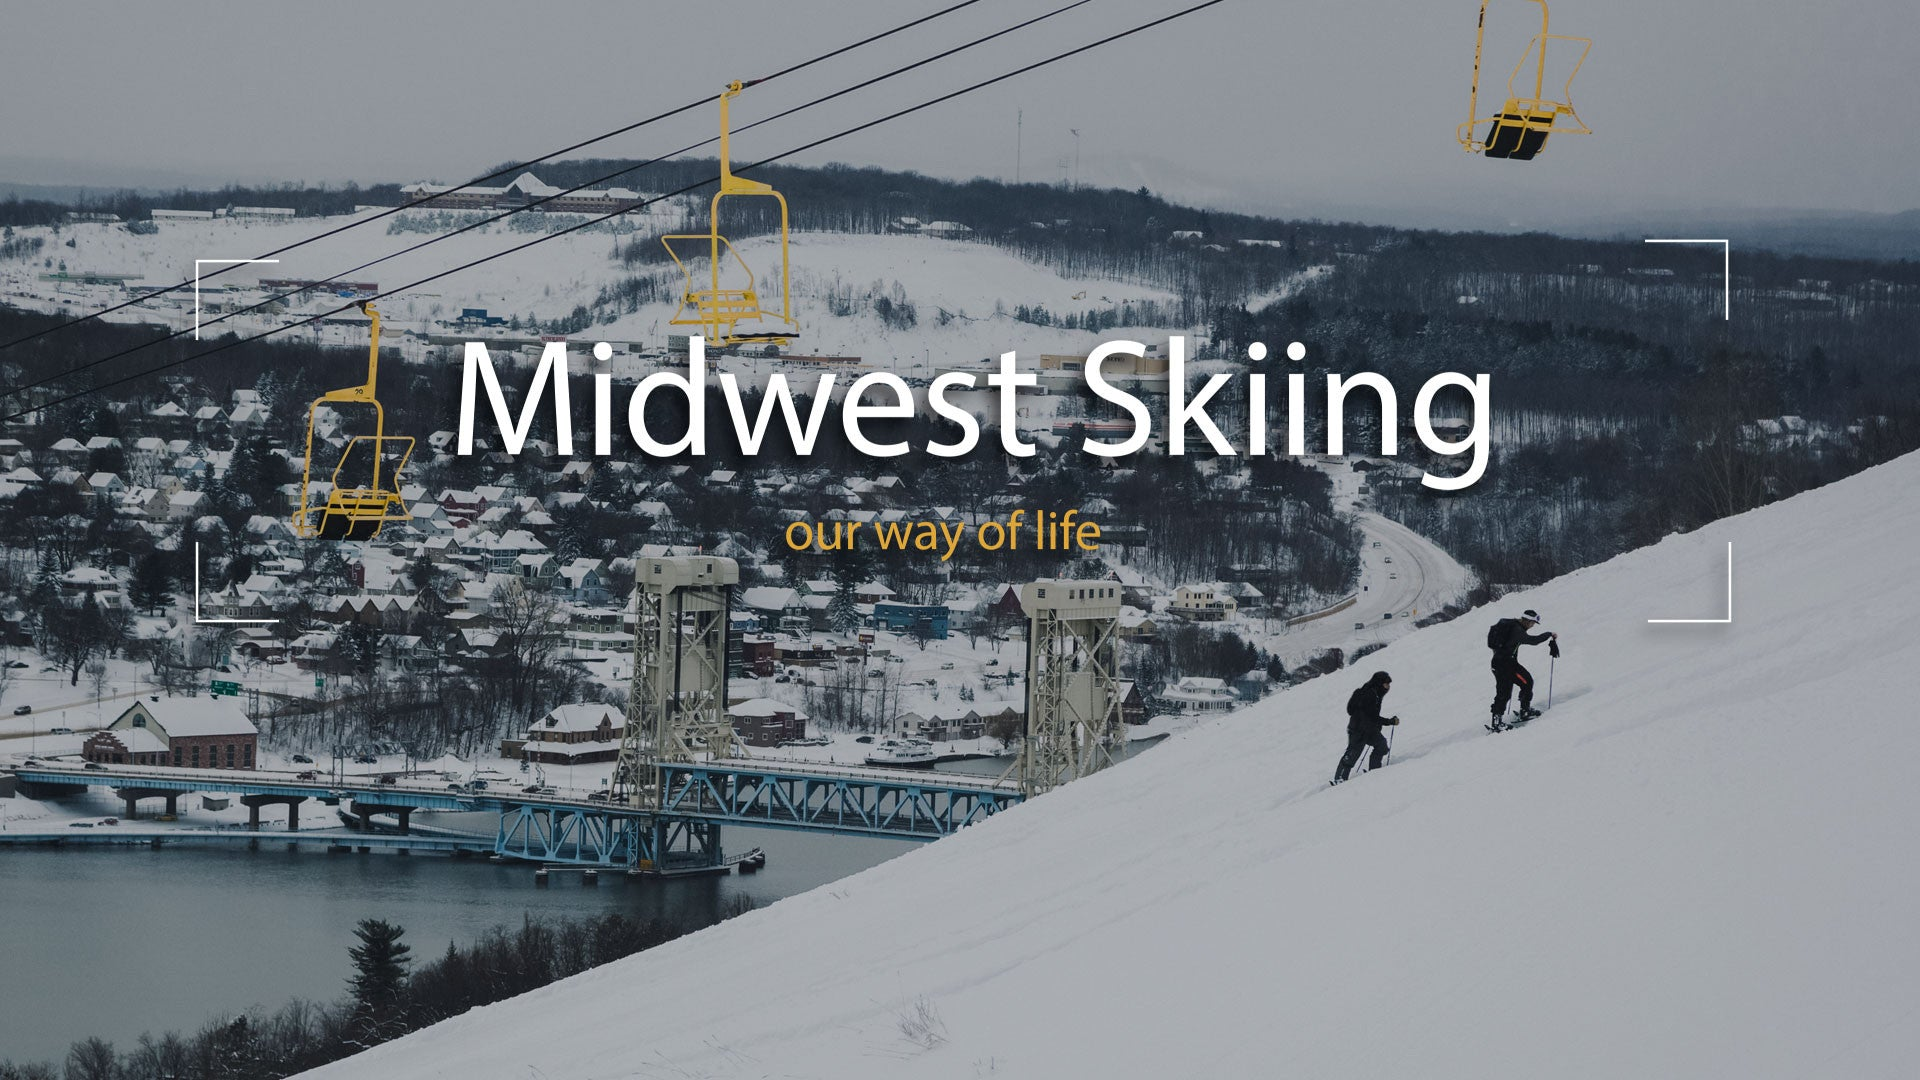 Midwest Skiing - Episode 1: First Tracks